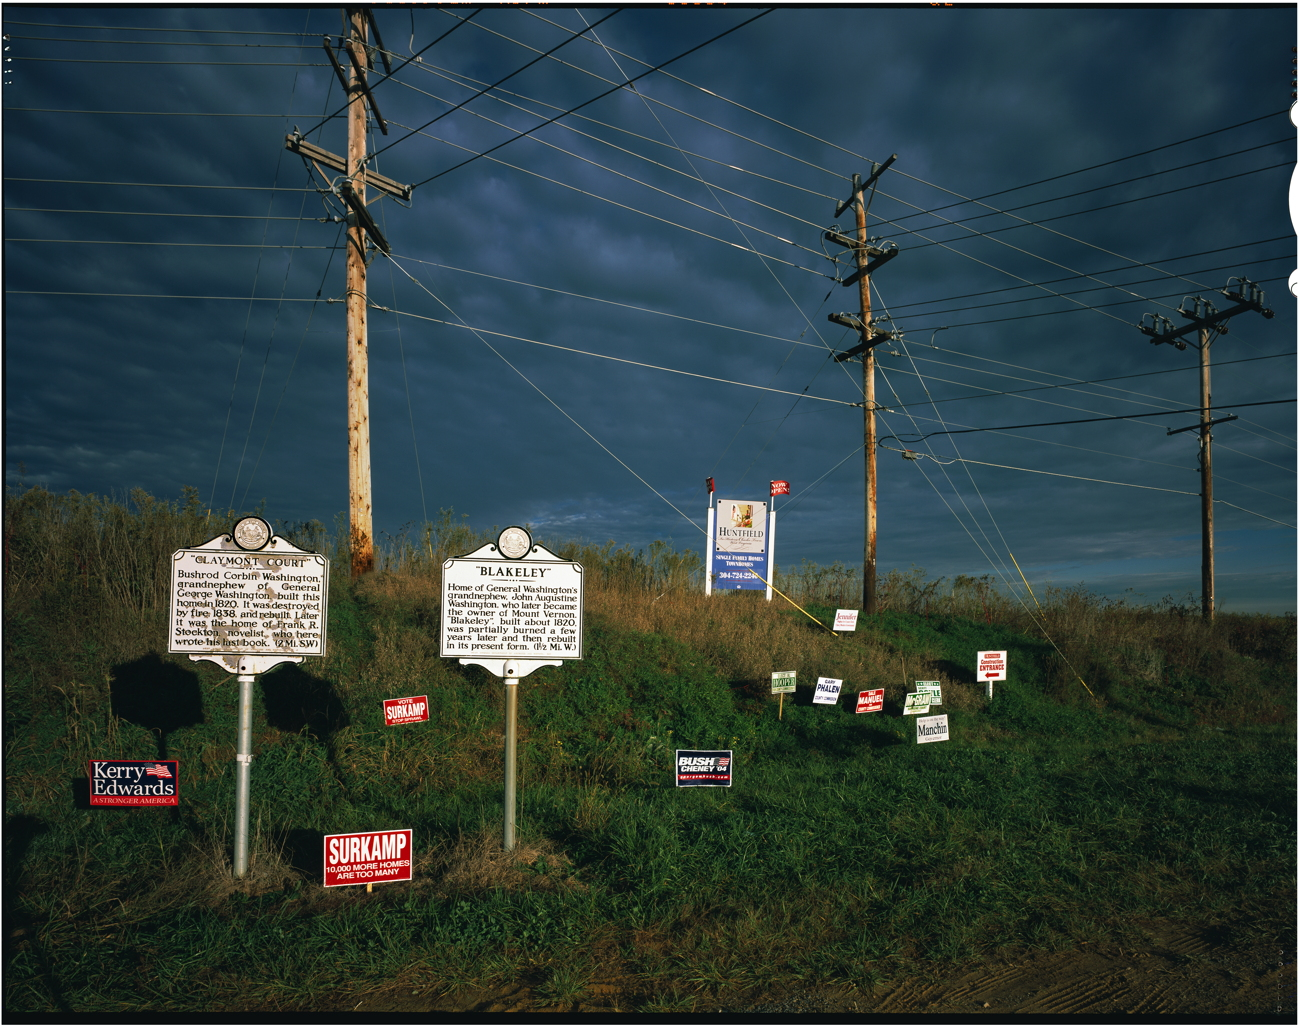 Roadside historical markers, and election signs, Charles City, West Virginia, 2004